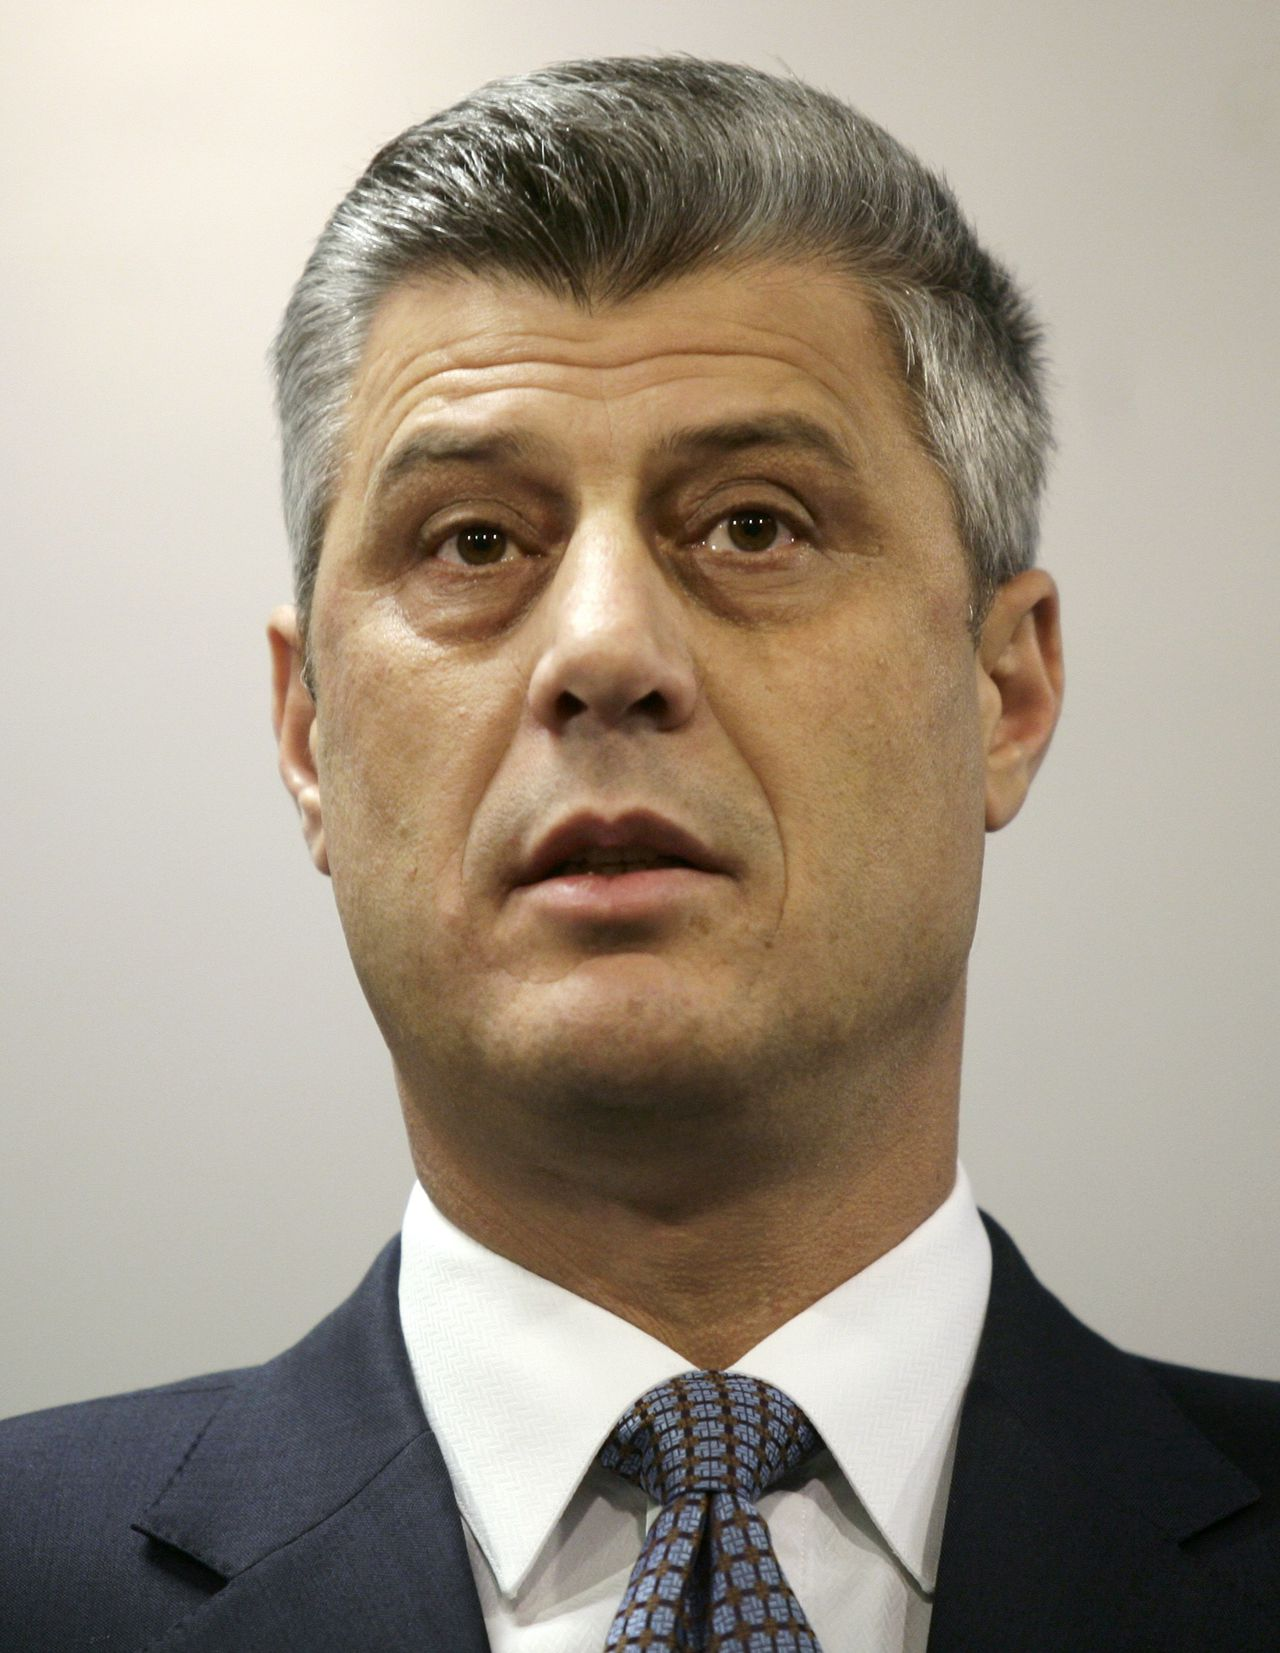 Kosovo's Prime Minister Hashim Thaci speaks during a news conference in Pristina December 16, 2010. Thaci denied on Thursday criminal allegations outlined in a European report and said he would use all political and legal means to bring the truth to light. REUTERS/Hazir Reka (KOSOVO - Tags: POLITICS HEADSHOT)